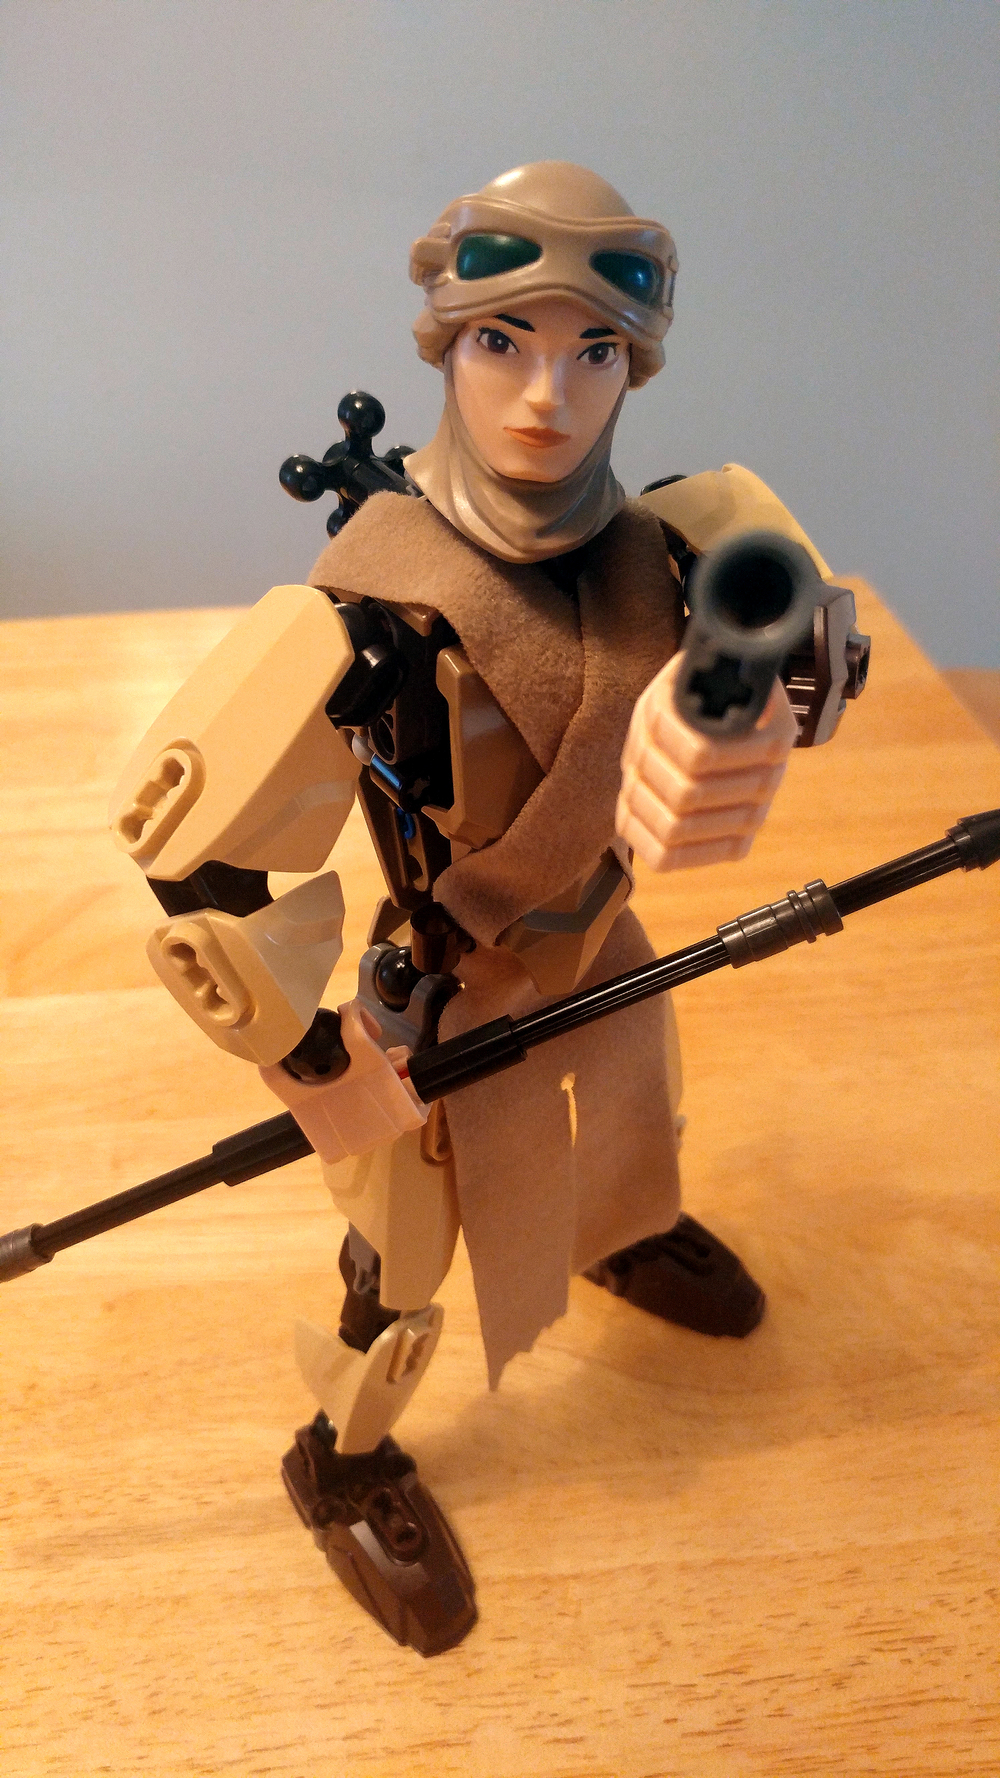 Star Wars LEGO Rey Buildable Figures Complete Constructed Close Up 6